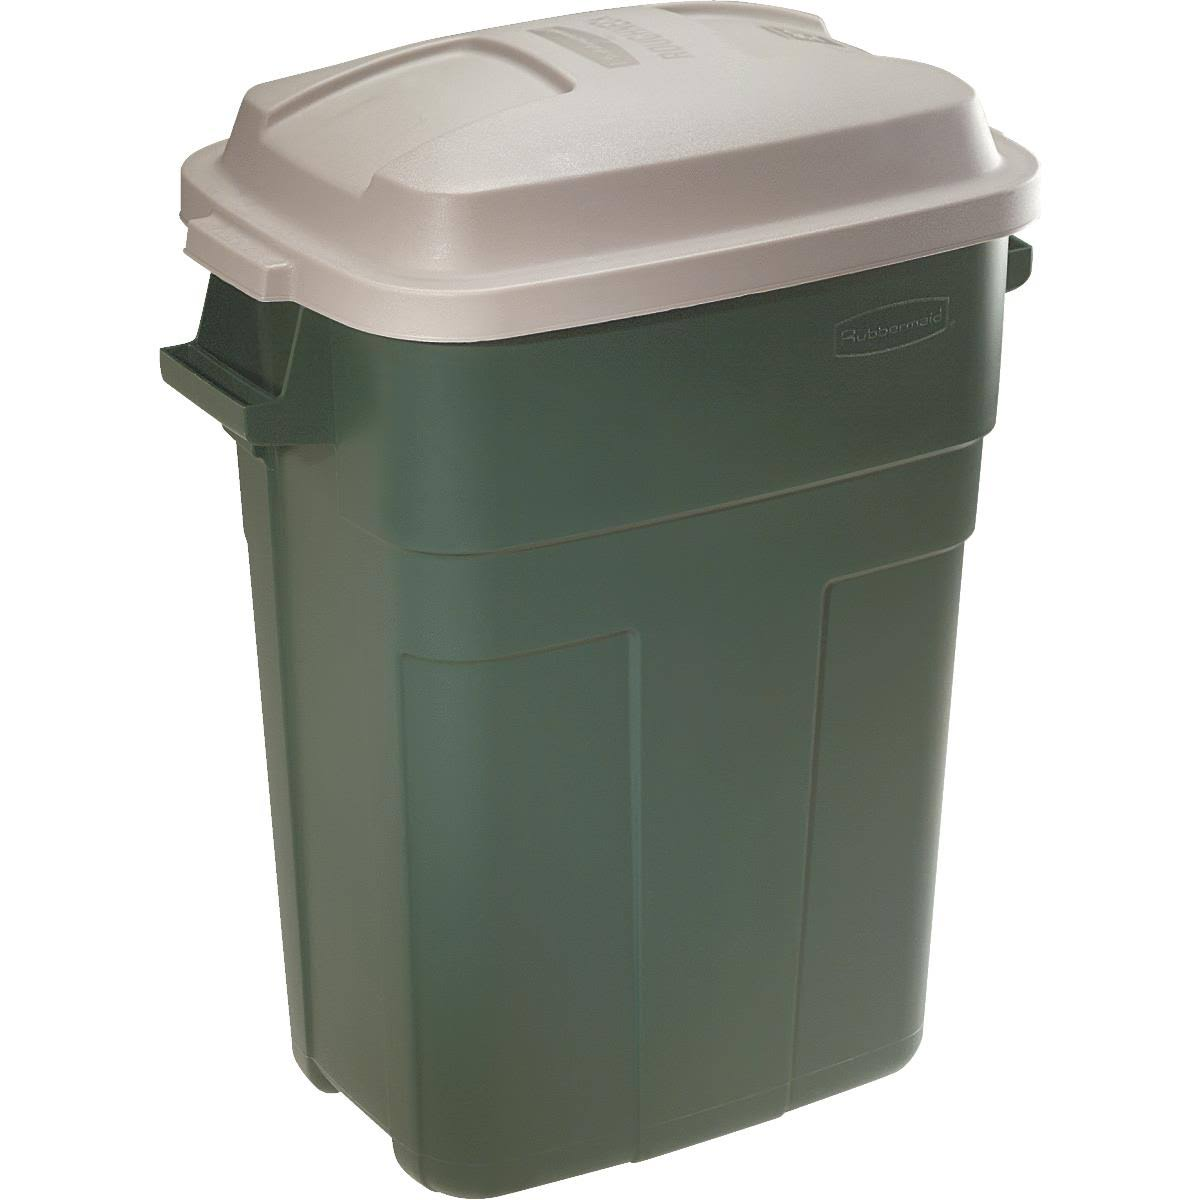 Rubbermaid 2979evg Roughneck Trash Container - Plastic Gold, 30gal